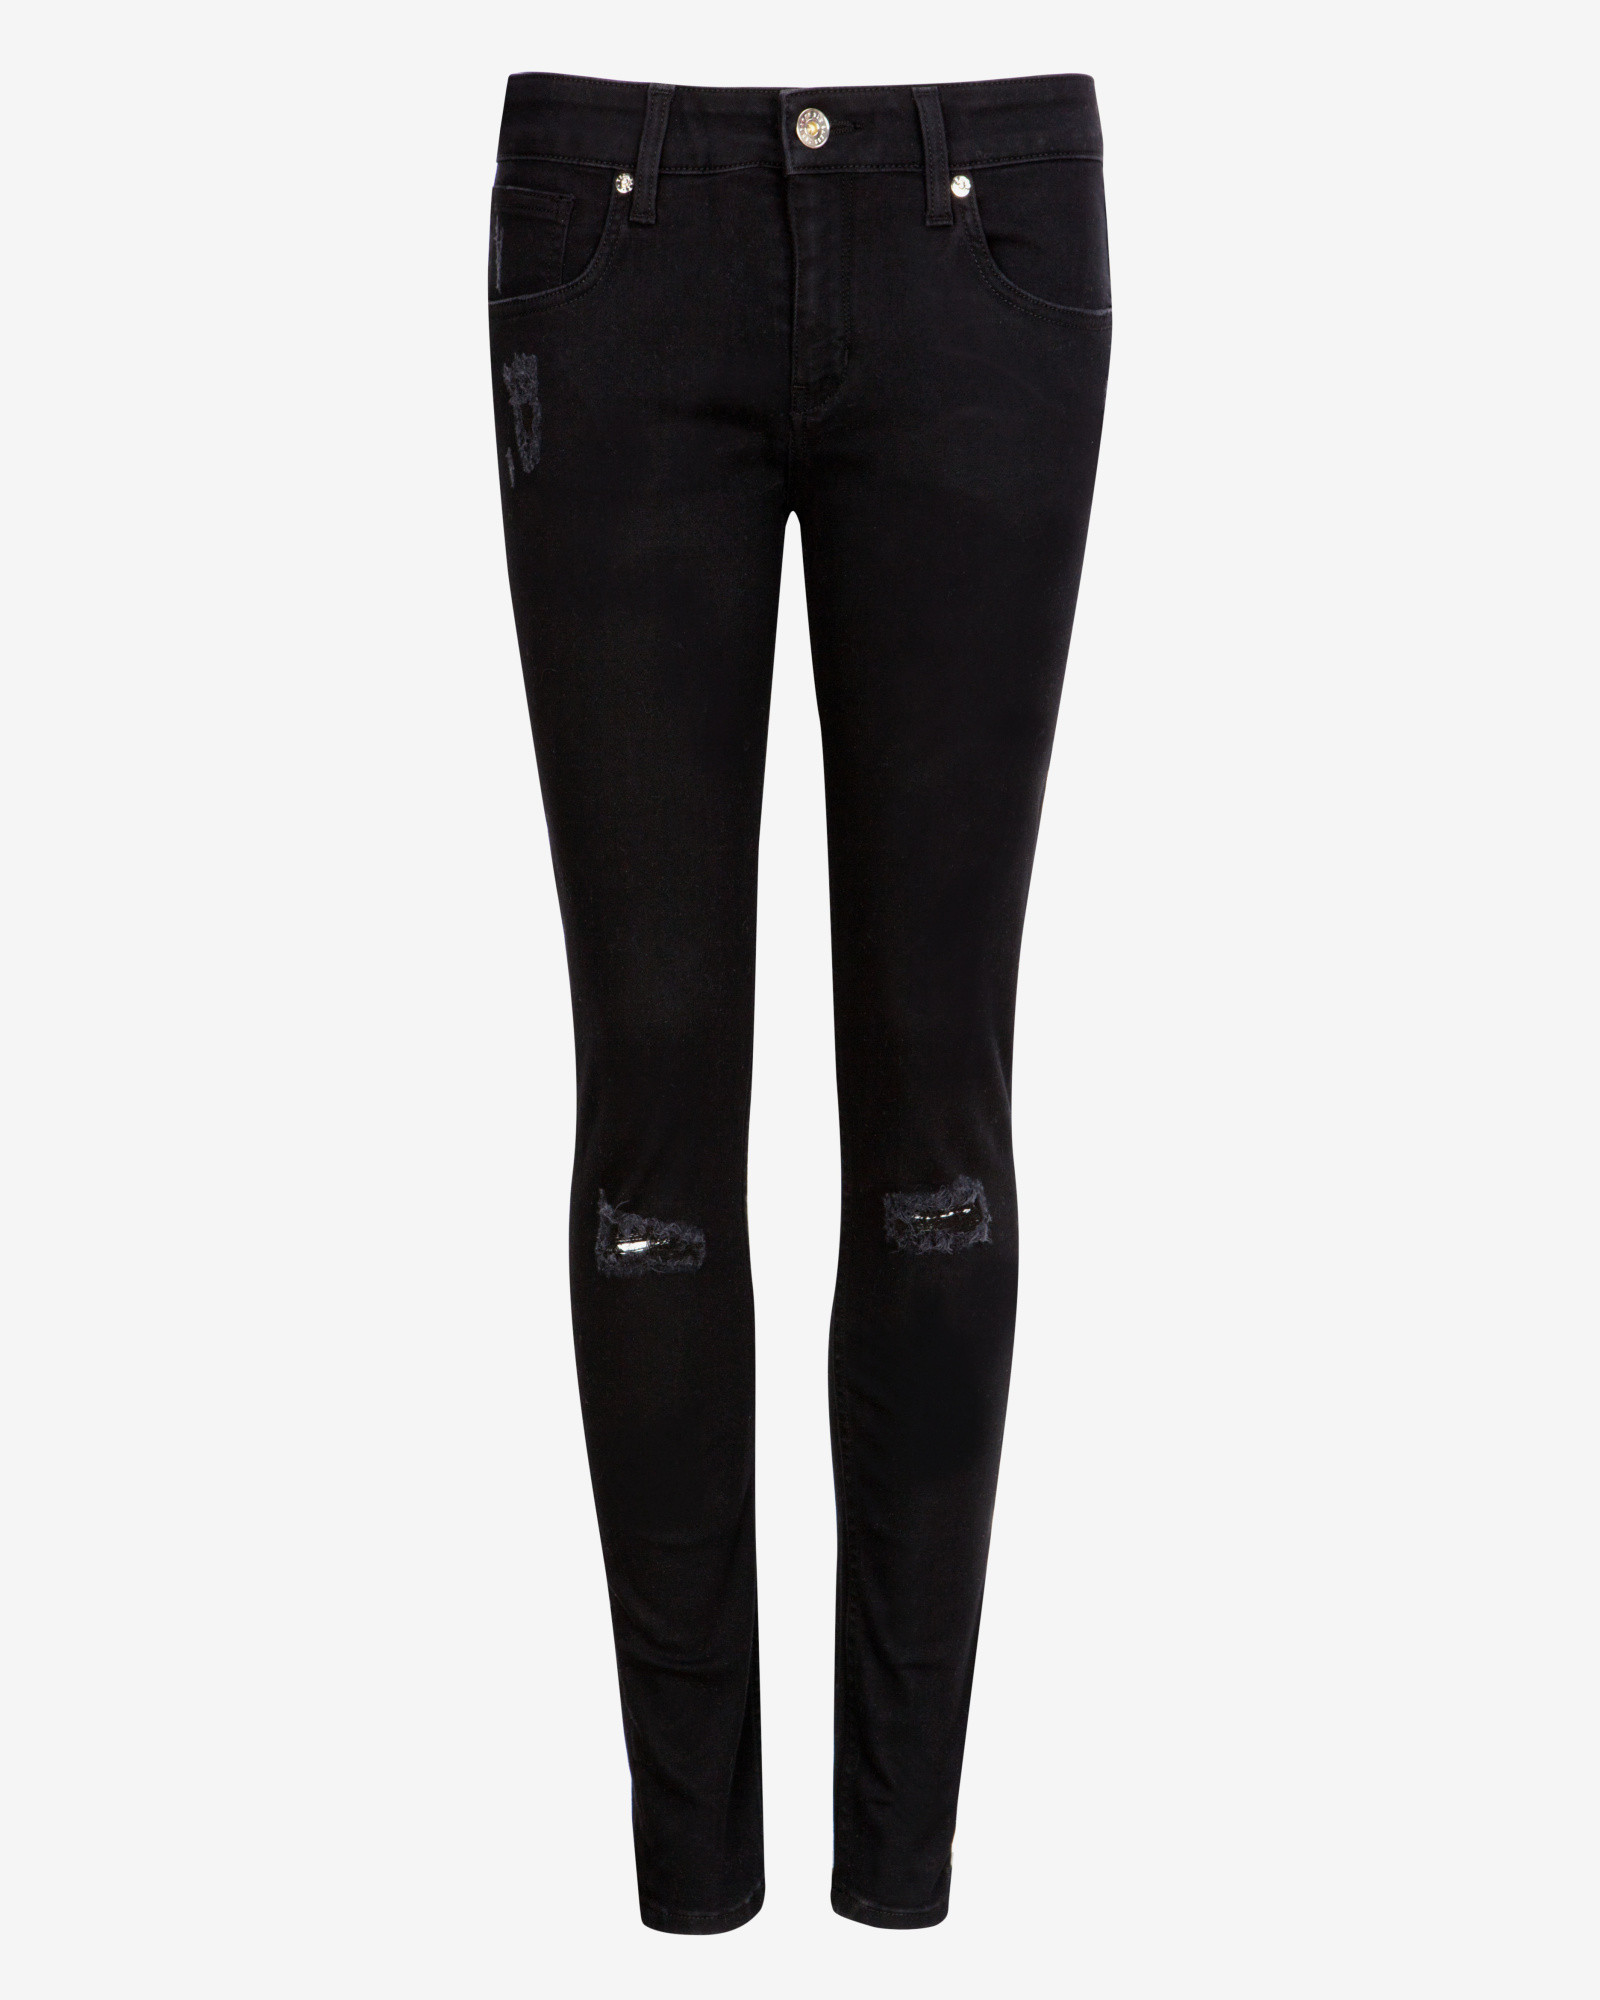 Distressed Black Skinny Jeans | Gommap Blog